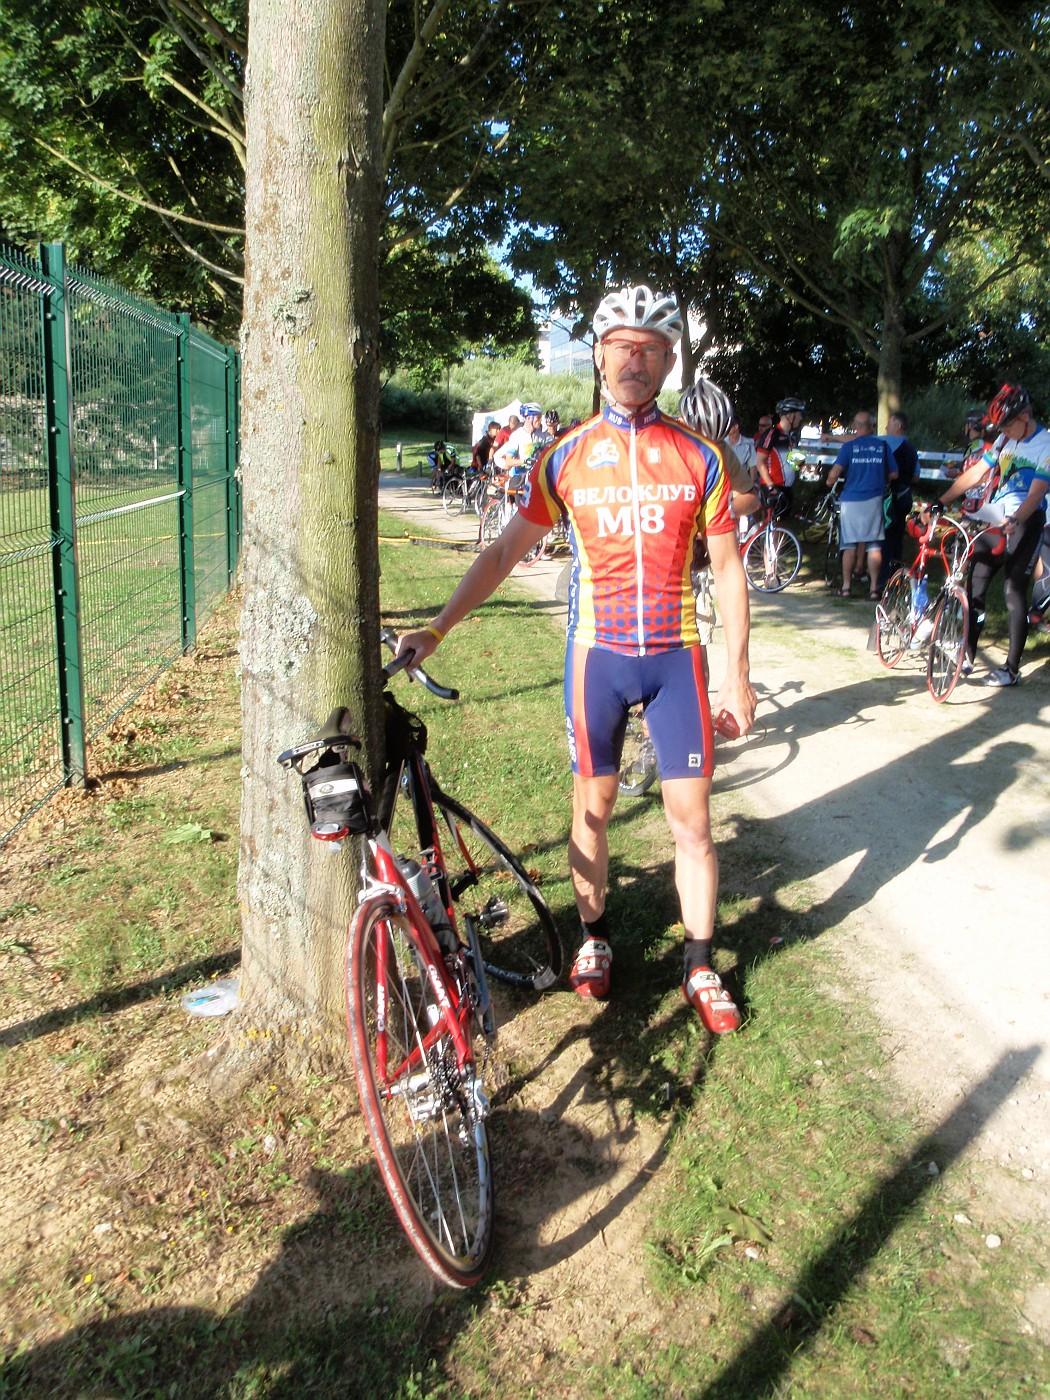 Cycling-friend Alexey from Arkhangelsk / Russia